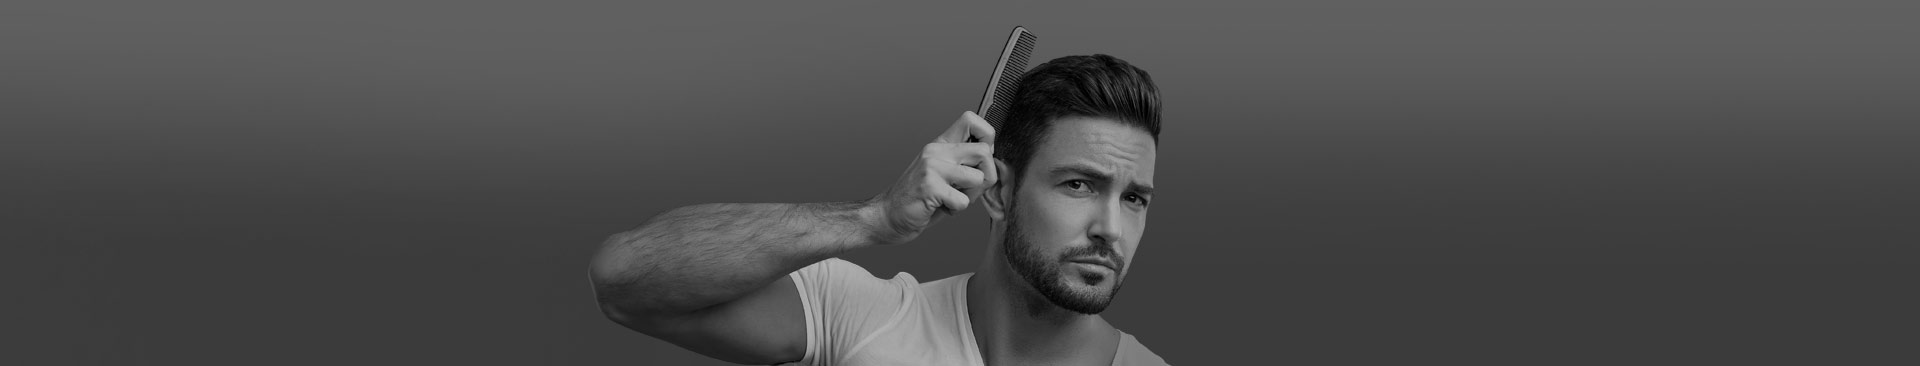 Hair regrowth therapy 04 banner